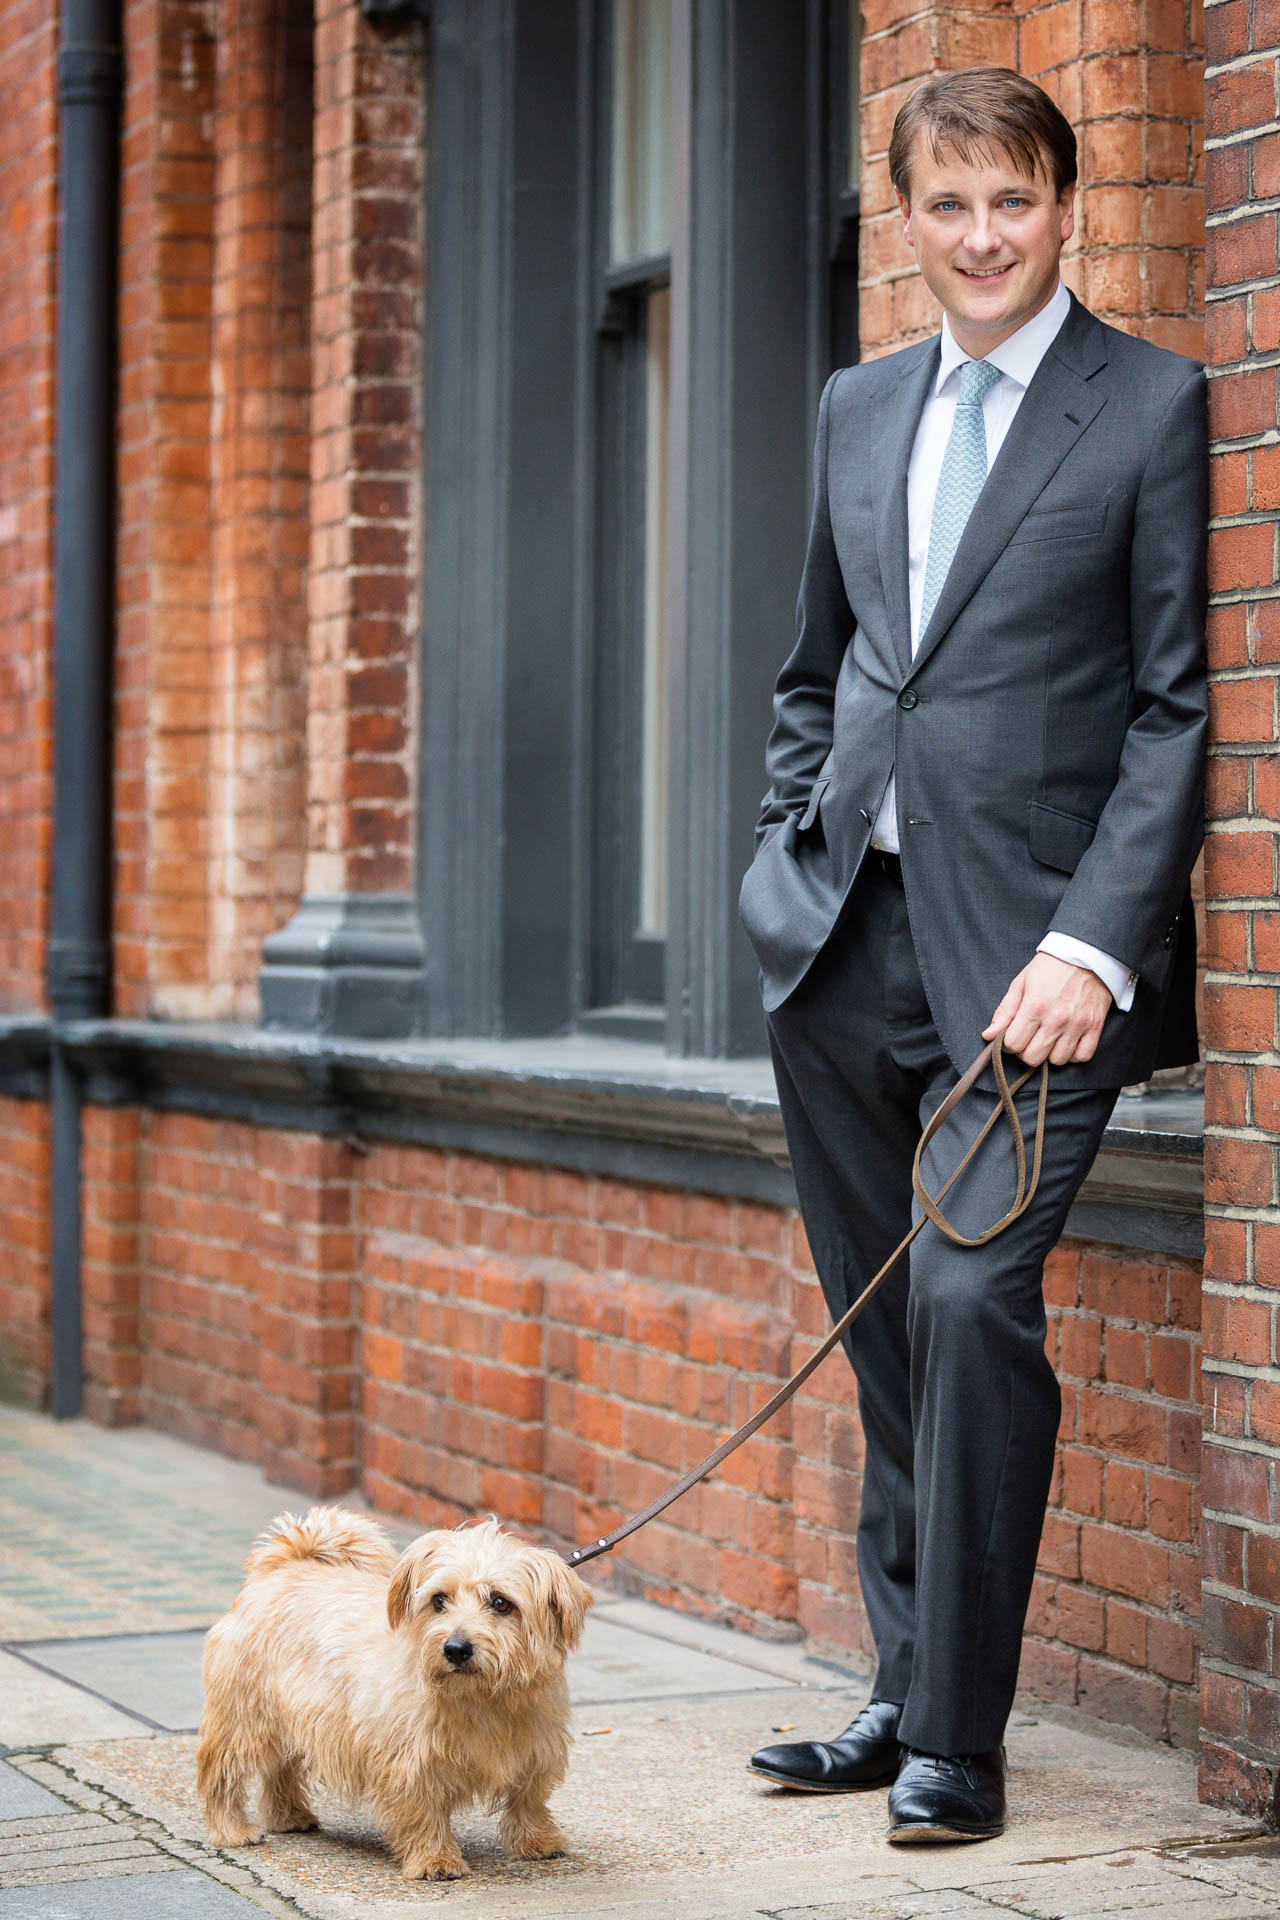 corporate portrait of businessman and his dog